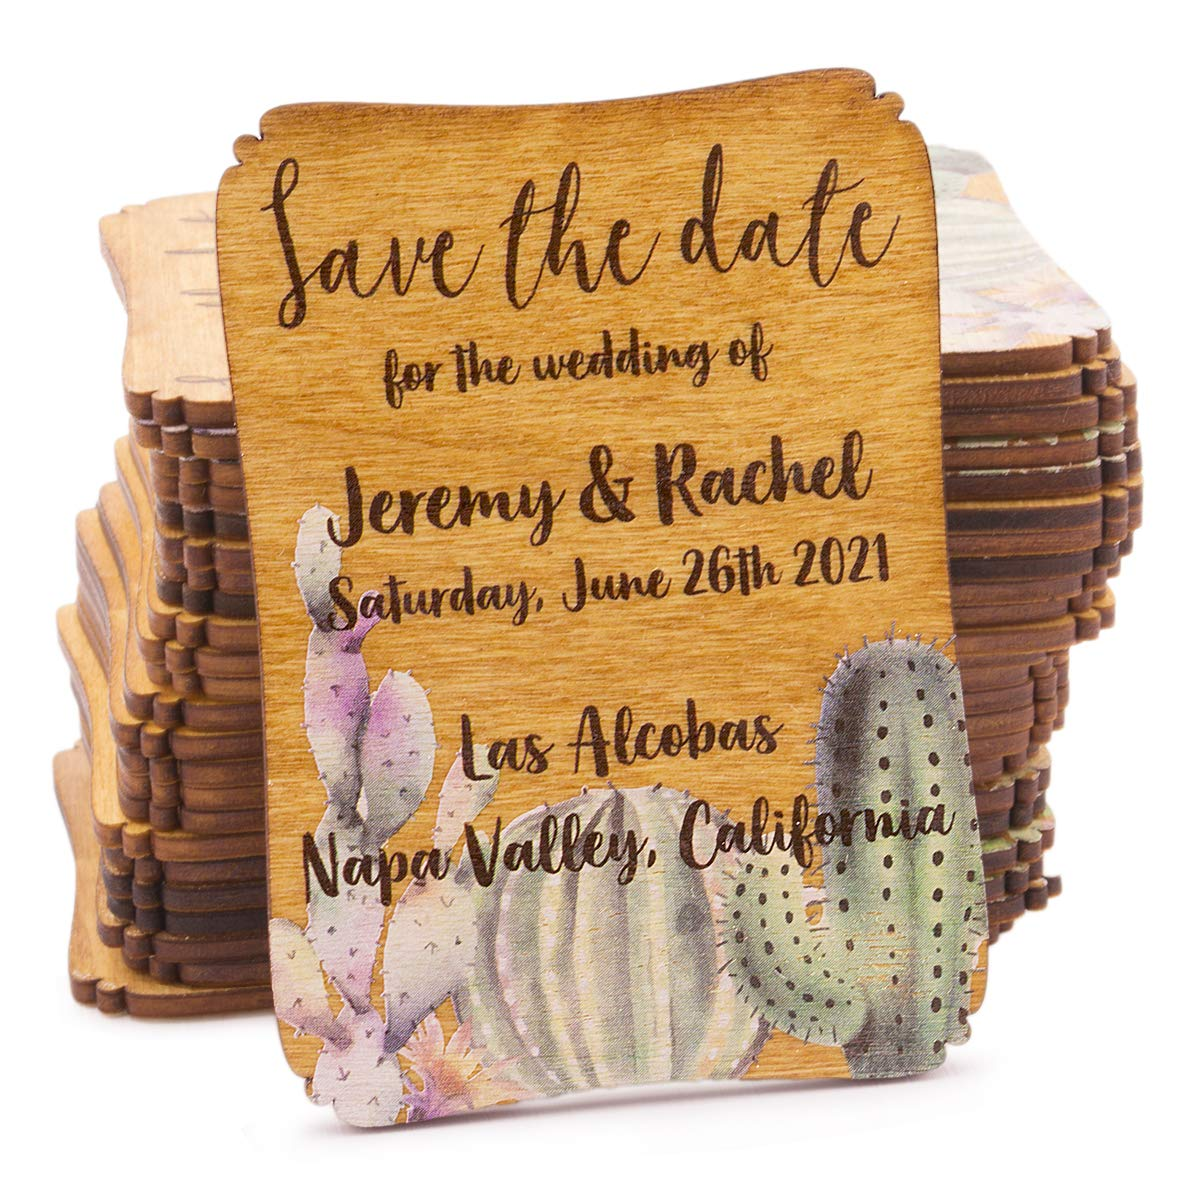 50 Personalized Painted Wood Save the Date Fridge Magnet for Rustic Wedding (Cacti & Succulents) by Summer-Ray.com